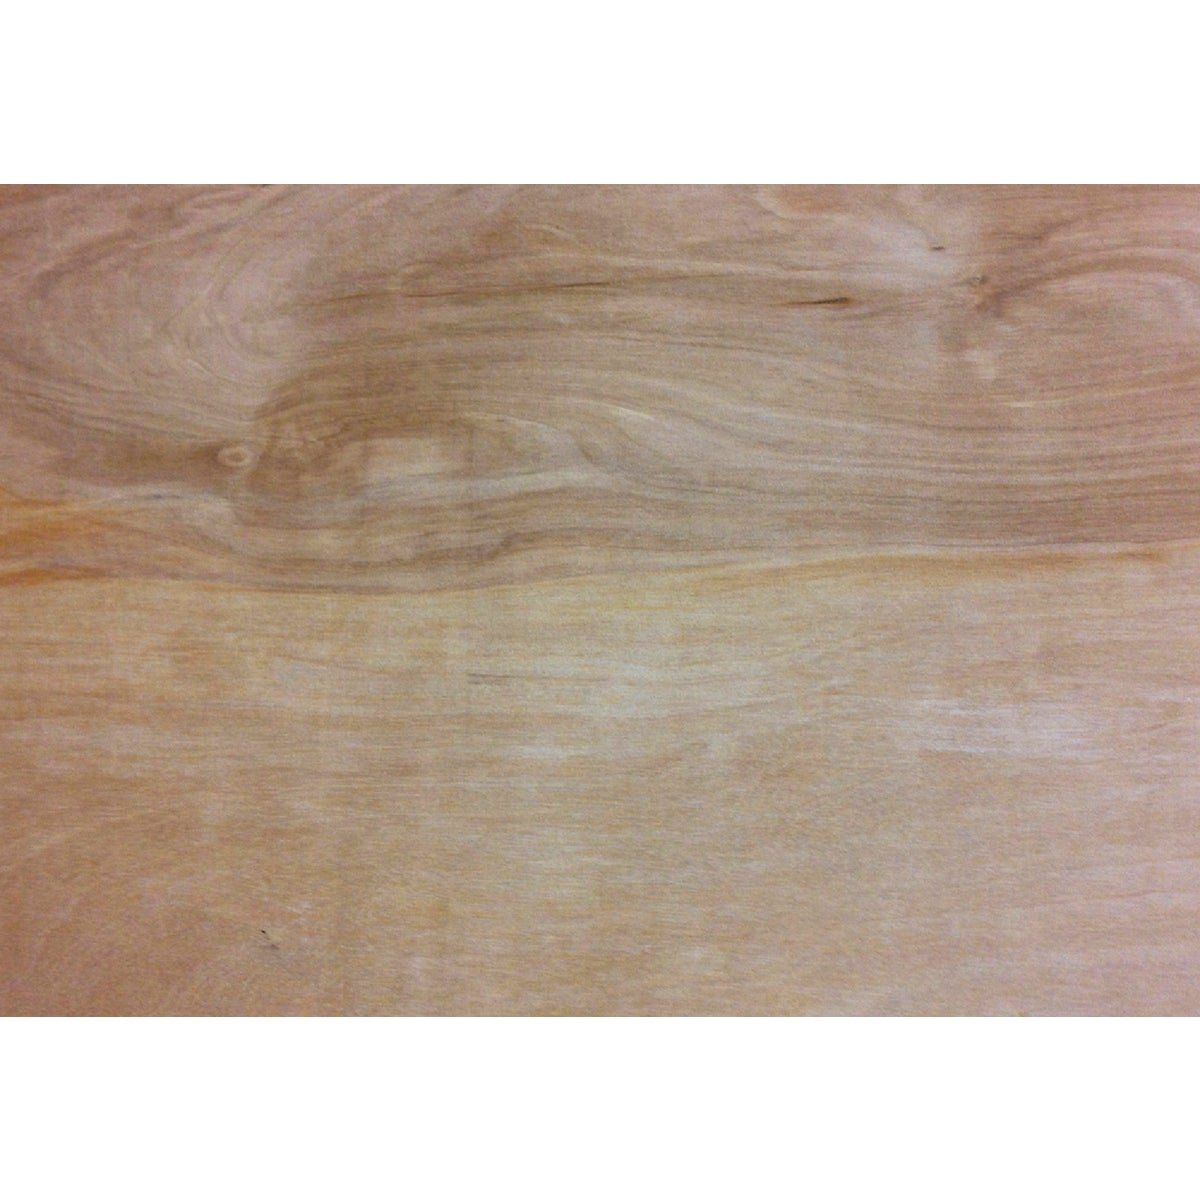 "3/8"" 24X24 BIRCH PLYWOOD - 146232 by Ufpi Lbr & Treated"